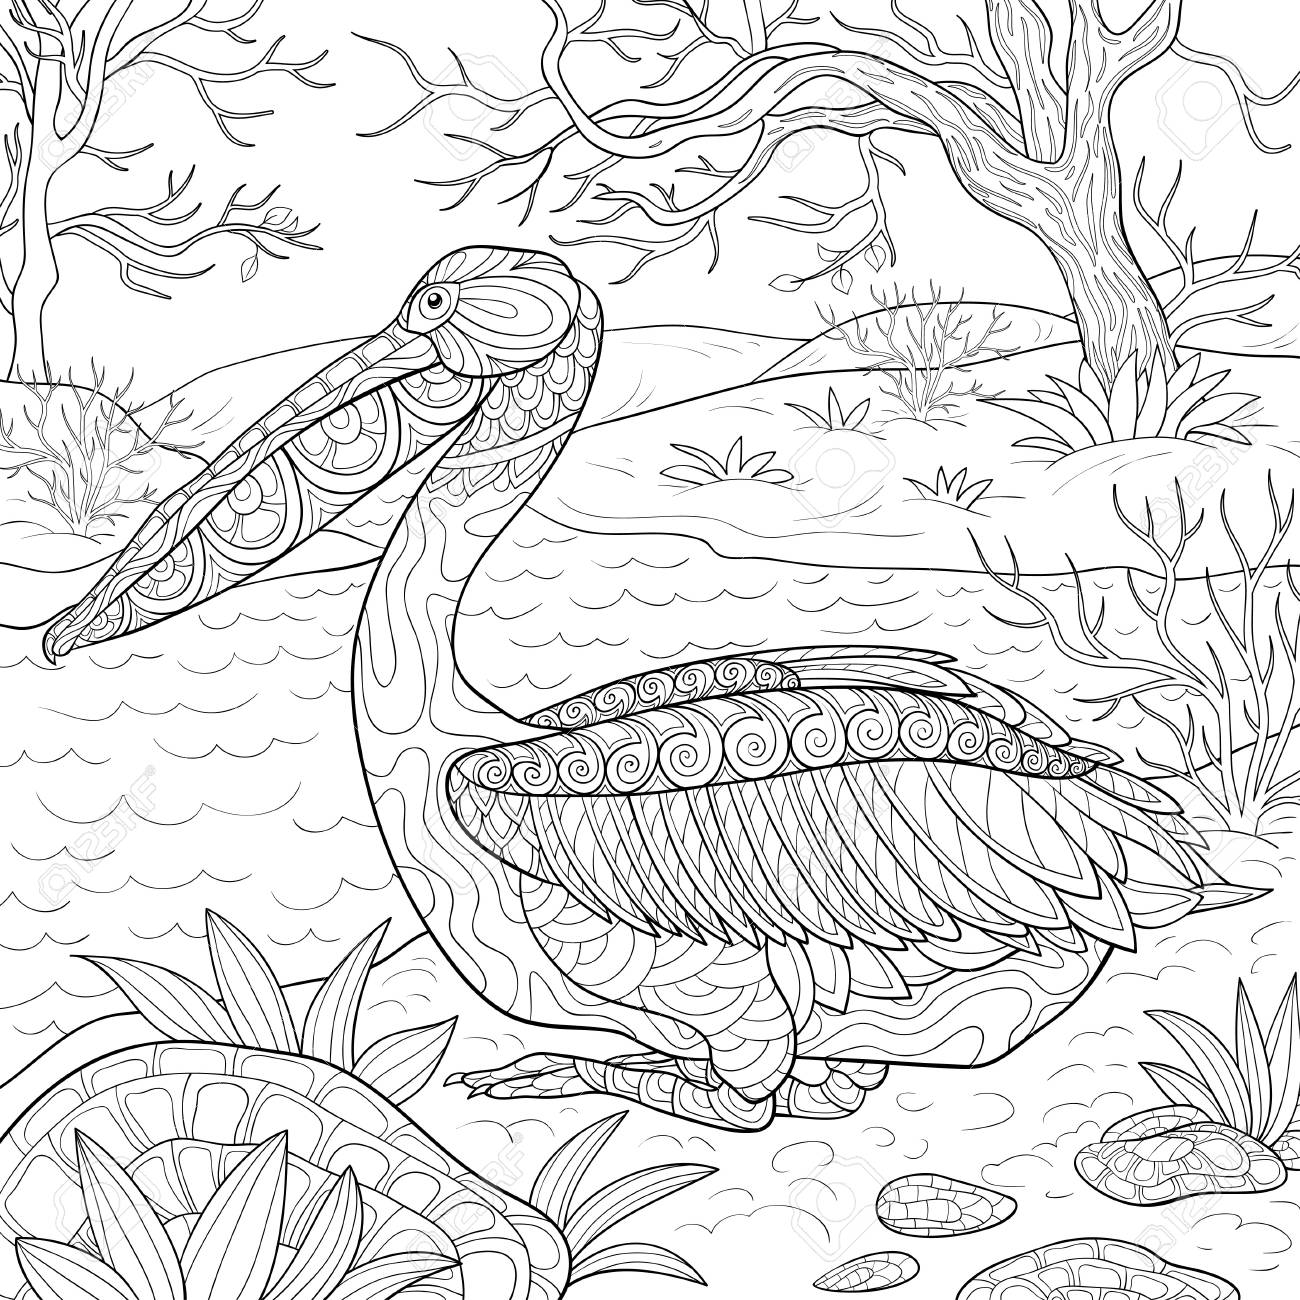 A cute pelican with ornaments on the nature landscape image for relaxing.Zen art style illustration for print.A coloring book,page for adults.Poster design. - 126842129